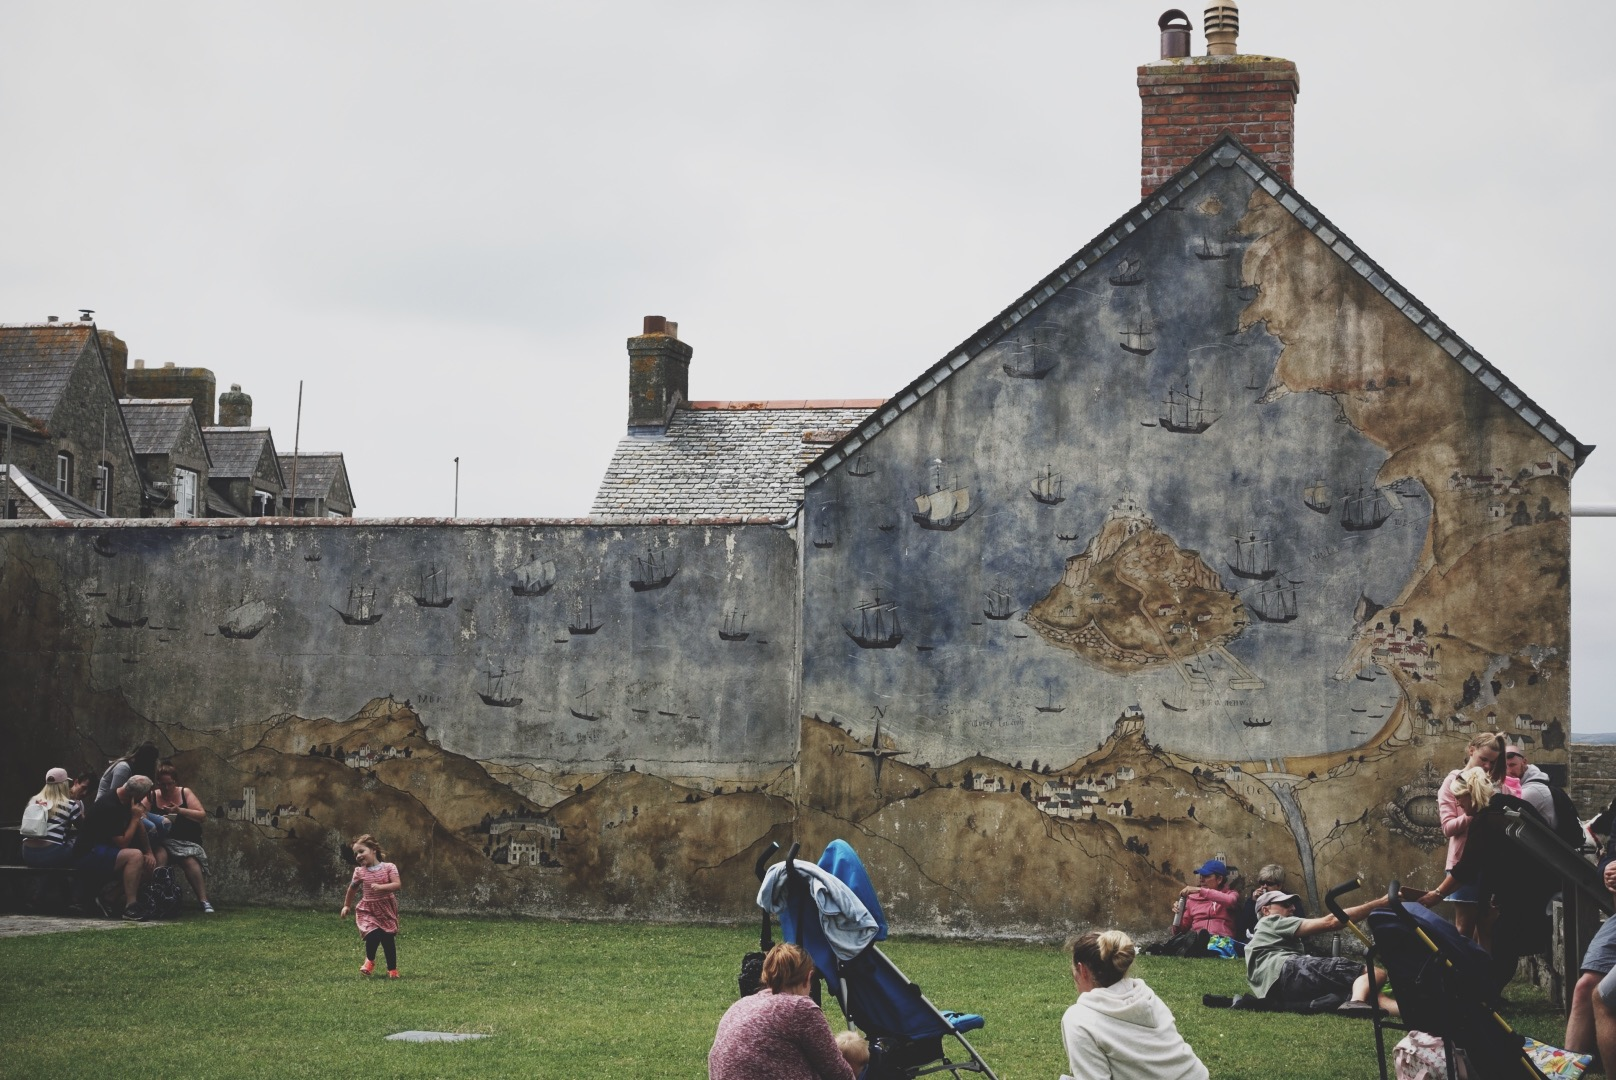 A mural on the side of a building on St. Michael's Mount, of … you guessed it … St. Michael's Mount.